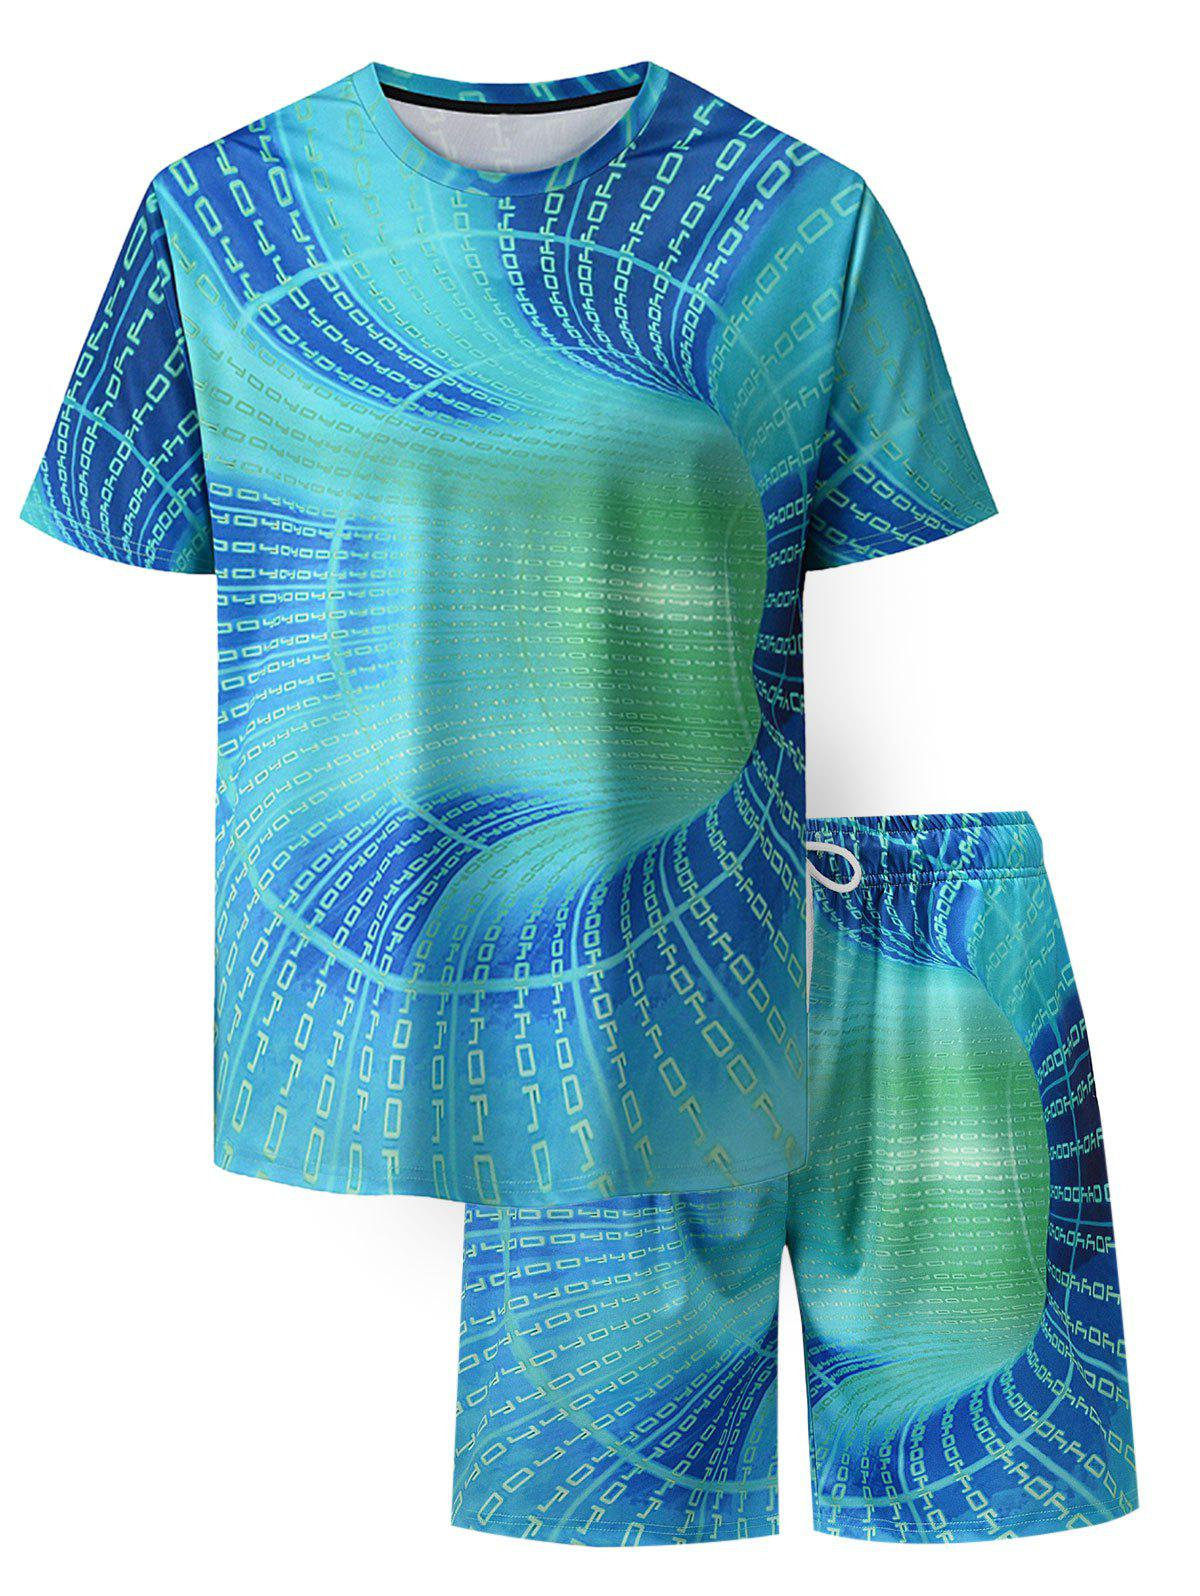 Letter Allover Print T-shirt And Shorts - TURQUOISE L